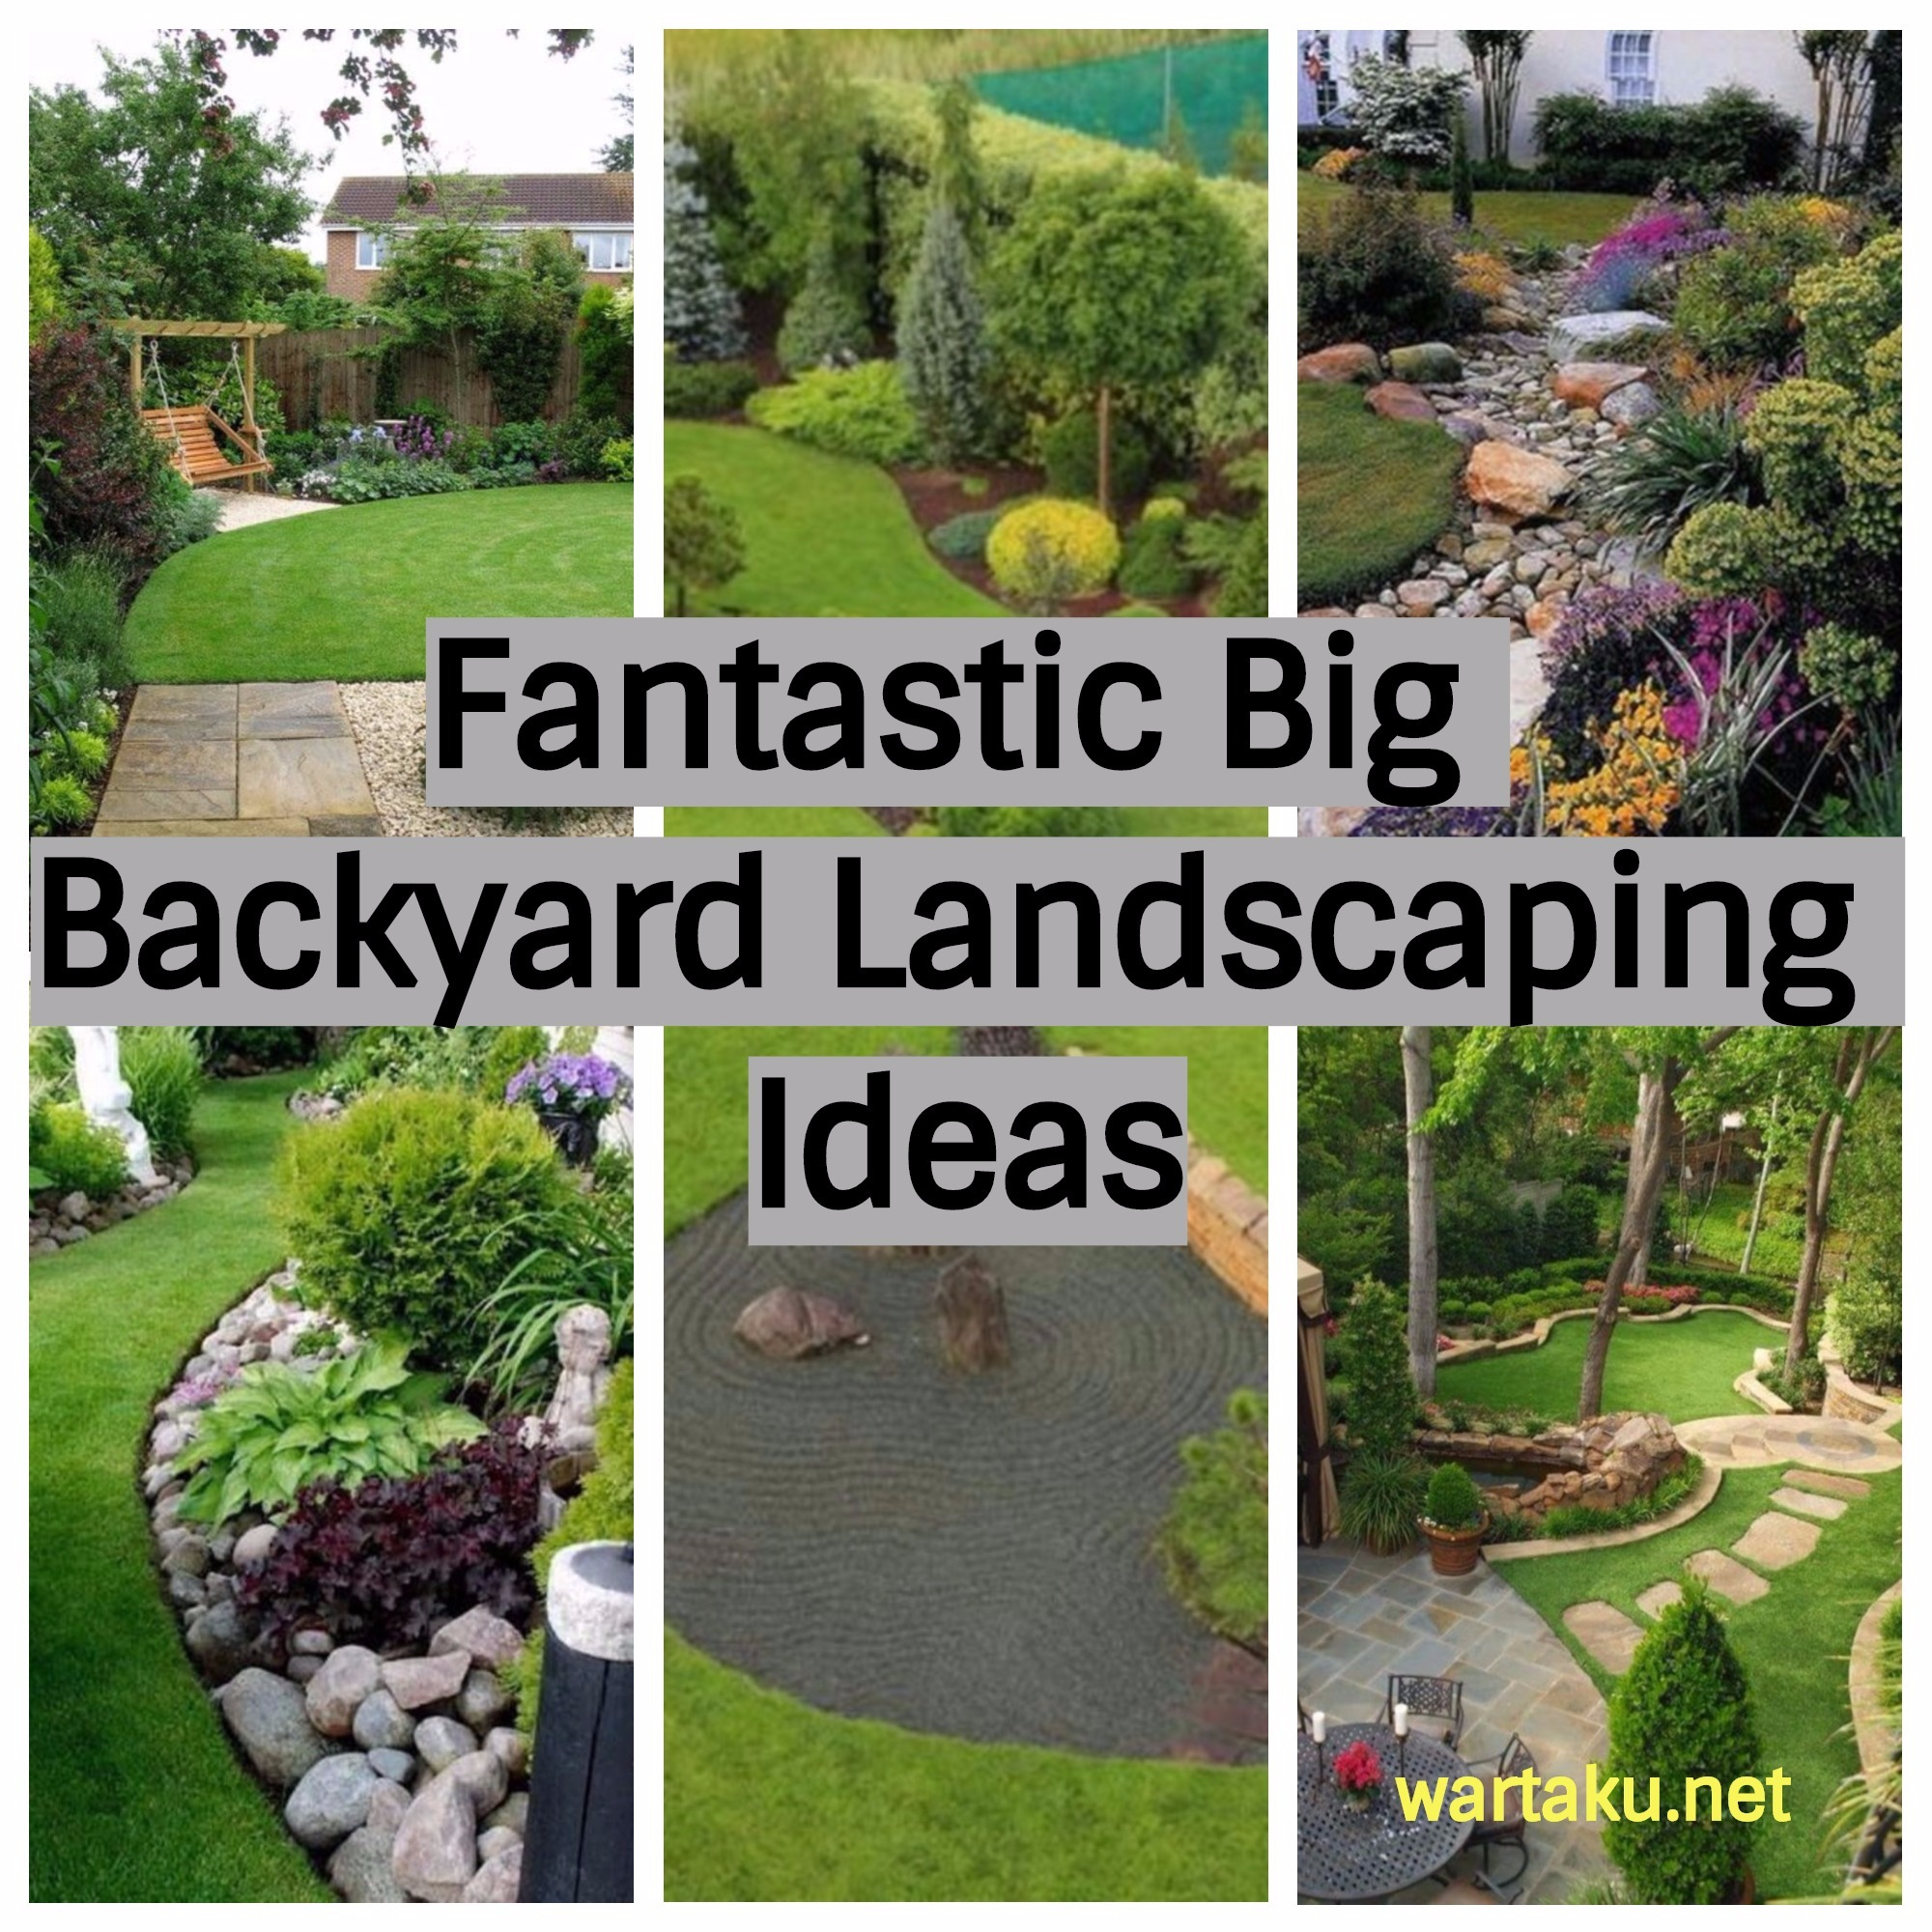 17 Fantastic Big Backyard Landscaping Ideas Wartaku with regard to 13 Clever Ideas How to Craft Large Backyard Landscaping Ideas